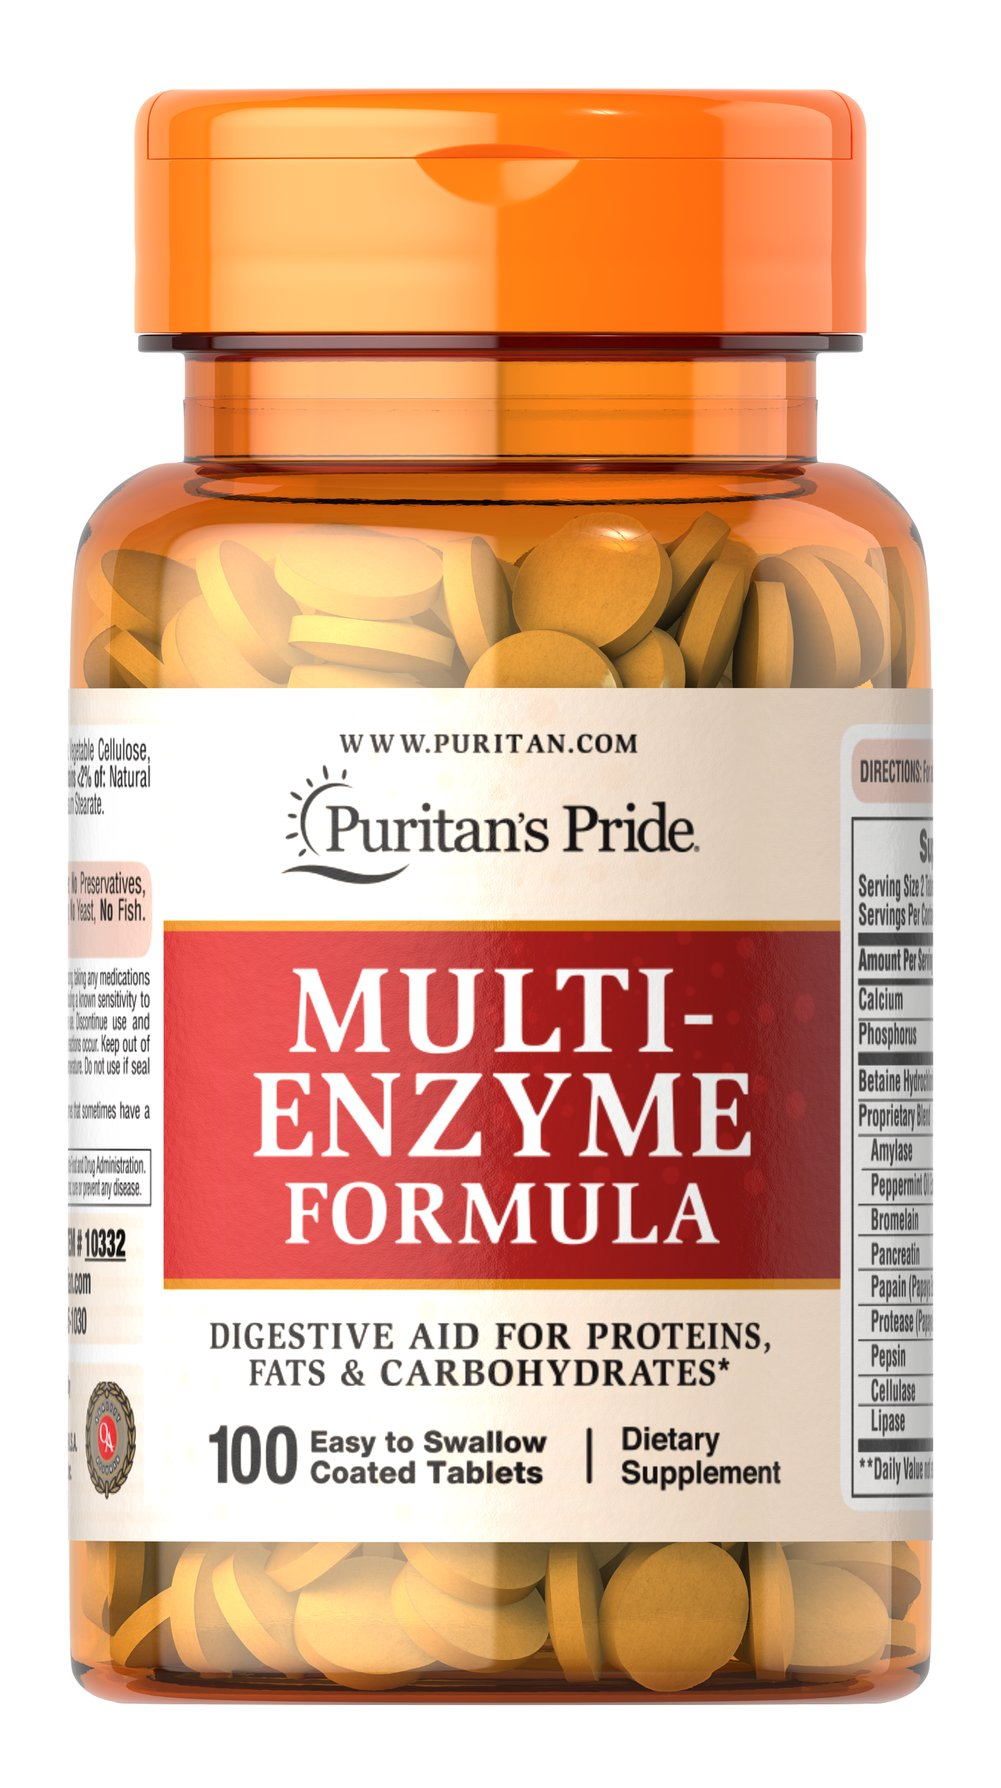 Multi Enzyme <p>Digestive aid for proteins, fats and carbohydrates.** Ingredients include enzymes that can help make nutrients available for the body's energy needs, cell growth and other vital functions.** This product is coated for ease of swallowing.</p>  100 Tablets  $12.99